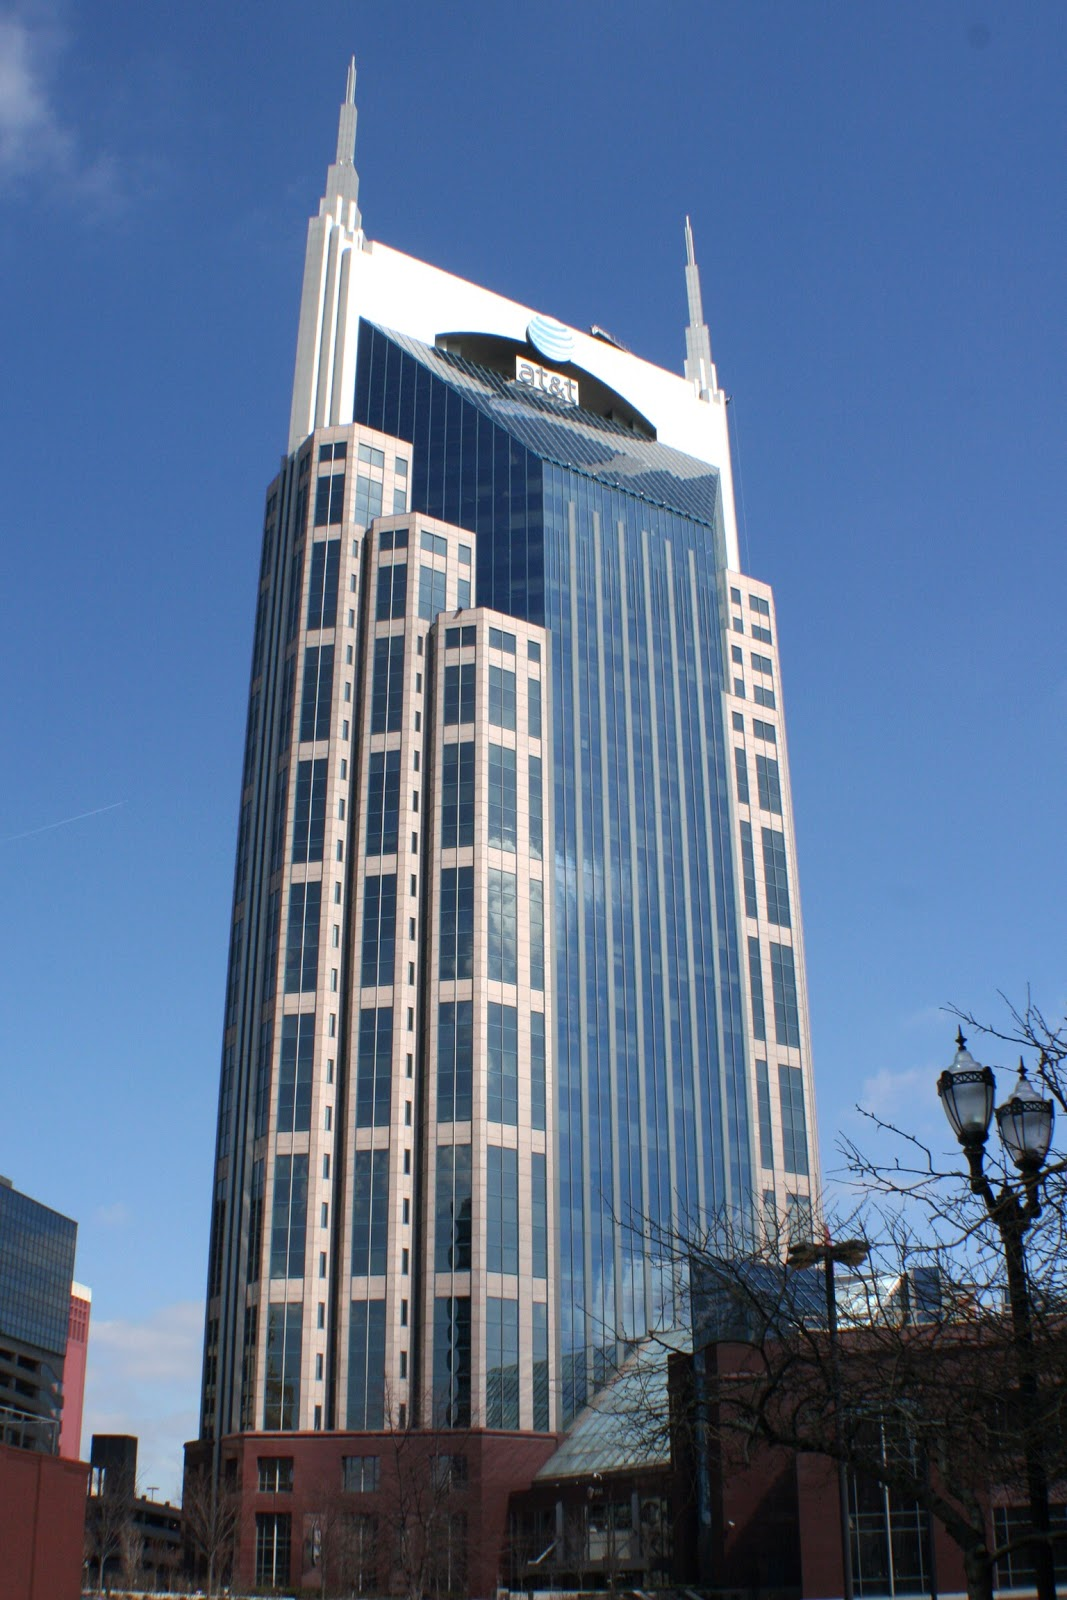 Runstairs Tallest Building In Tennessee